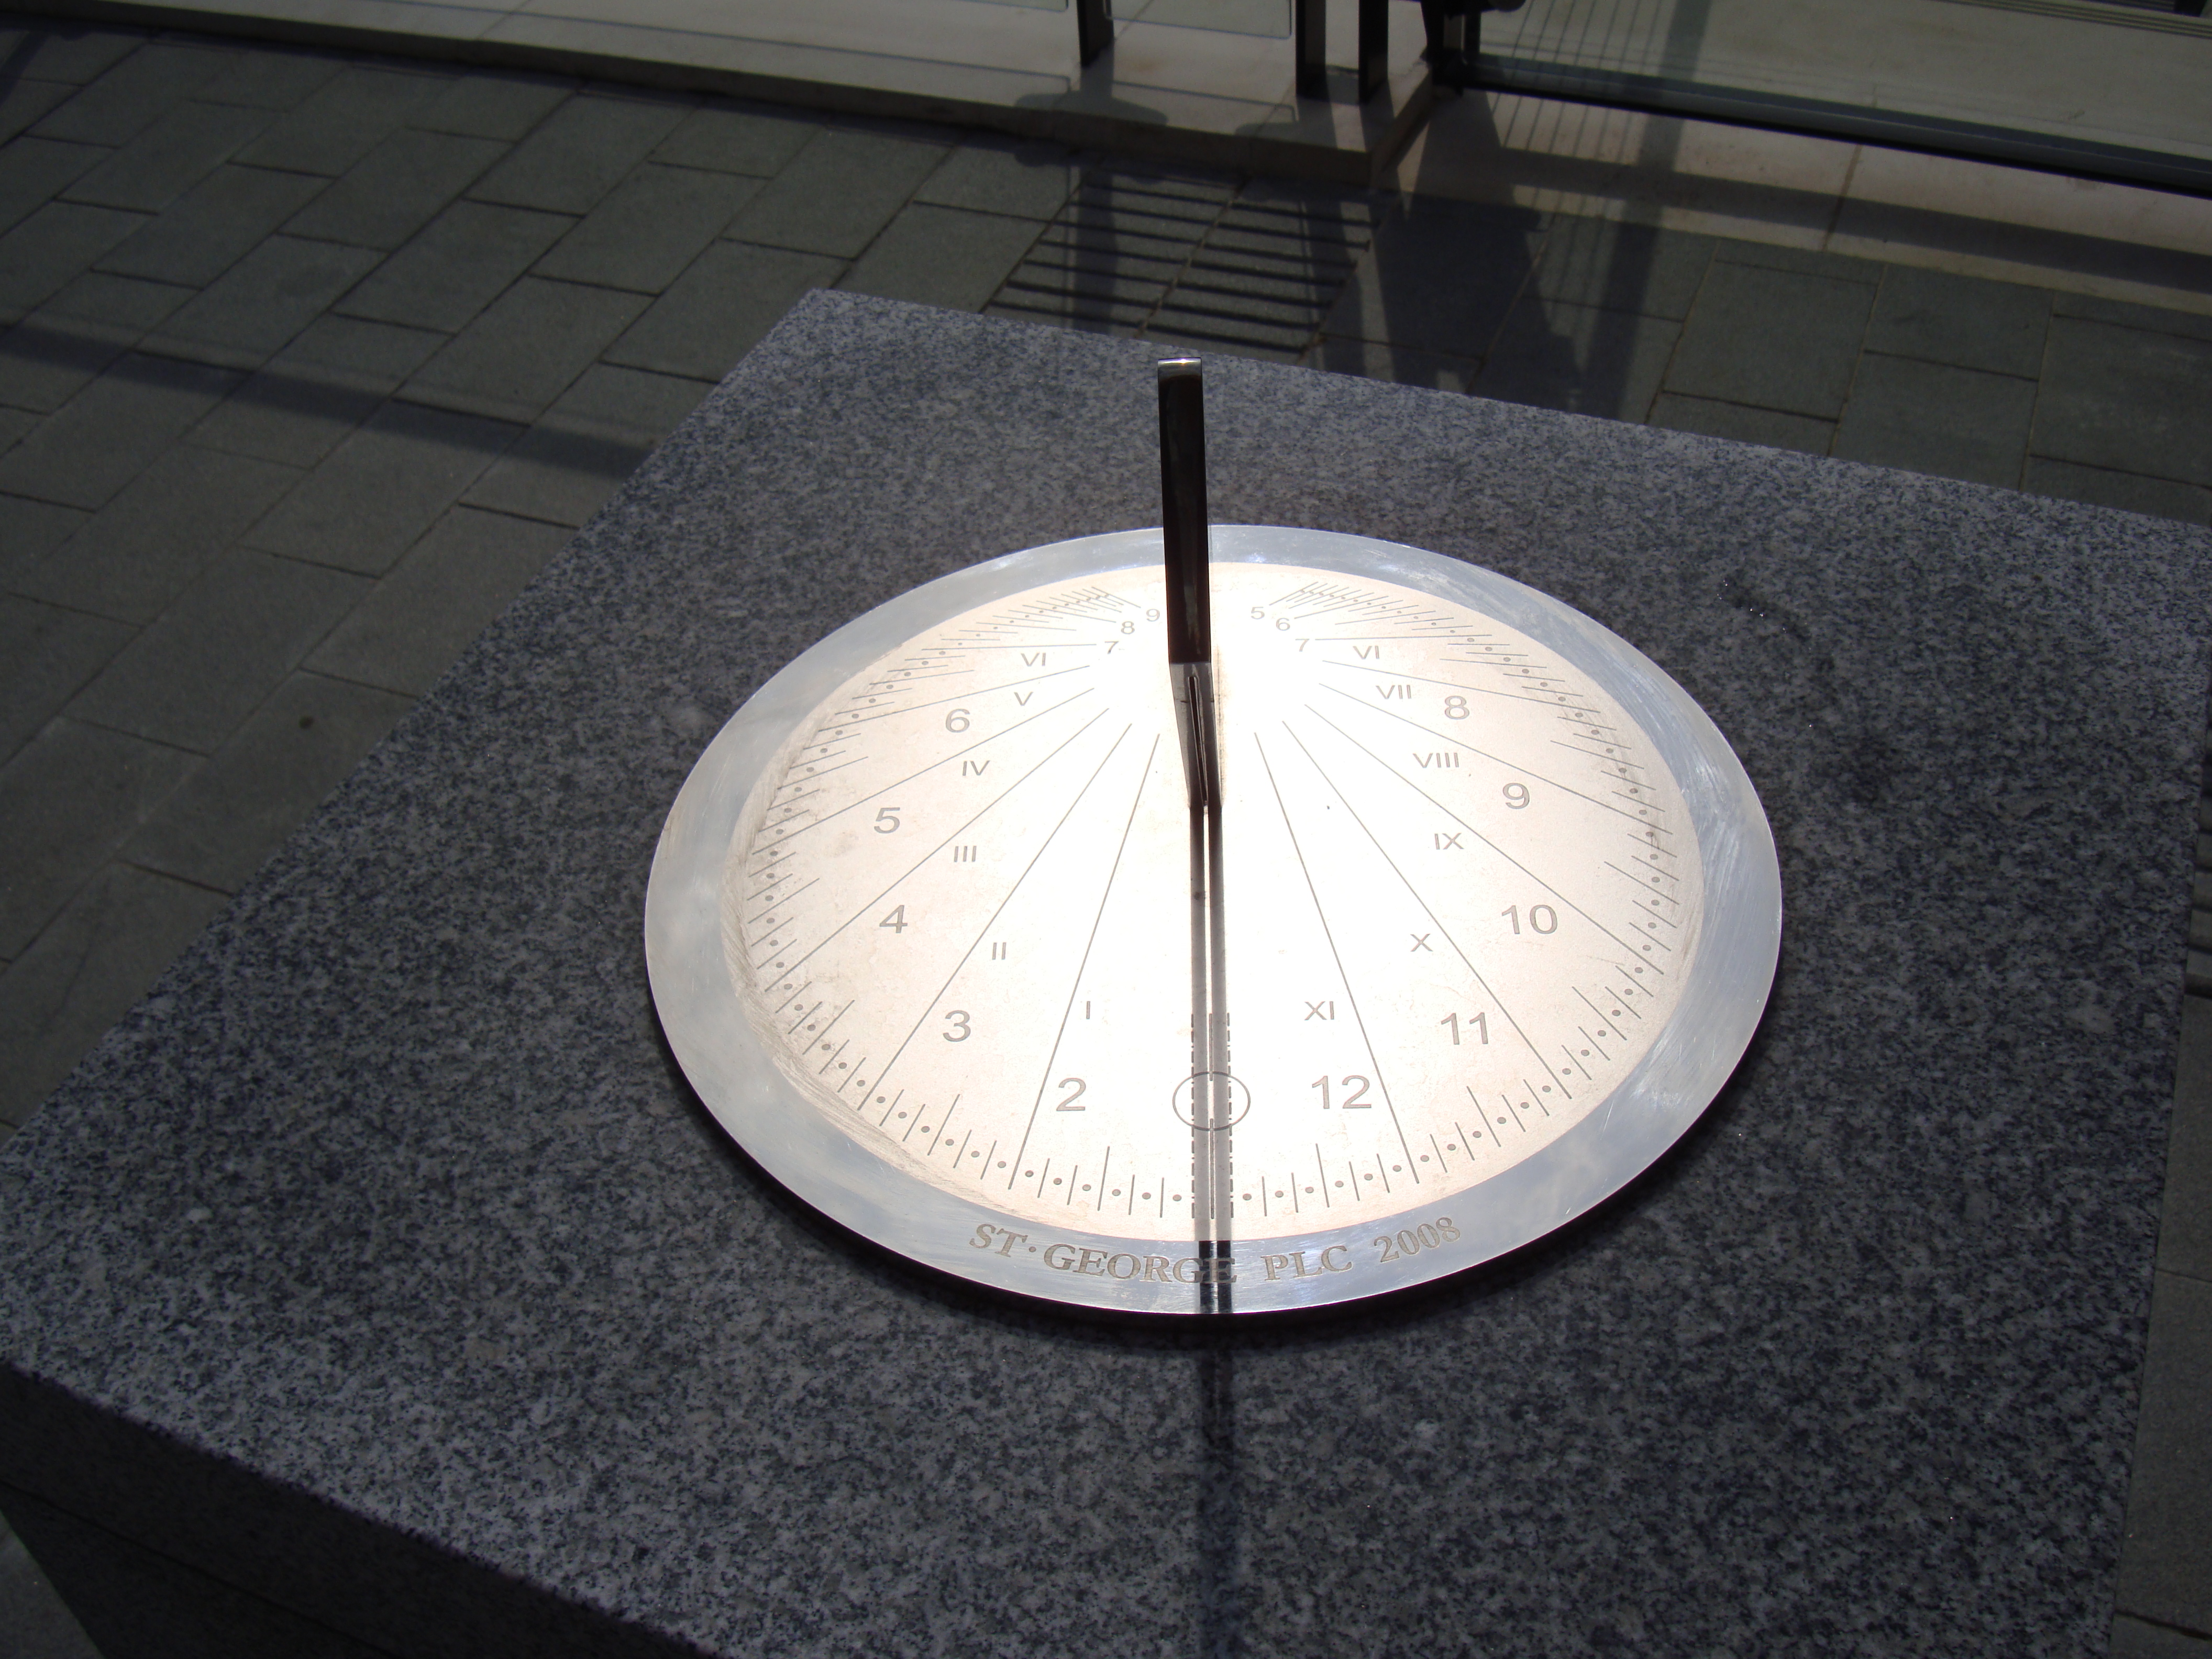 Stainless steel sundials in their settings